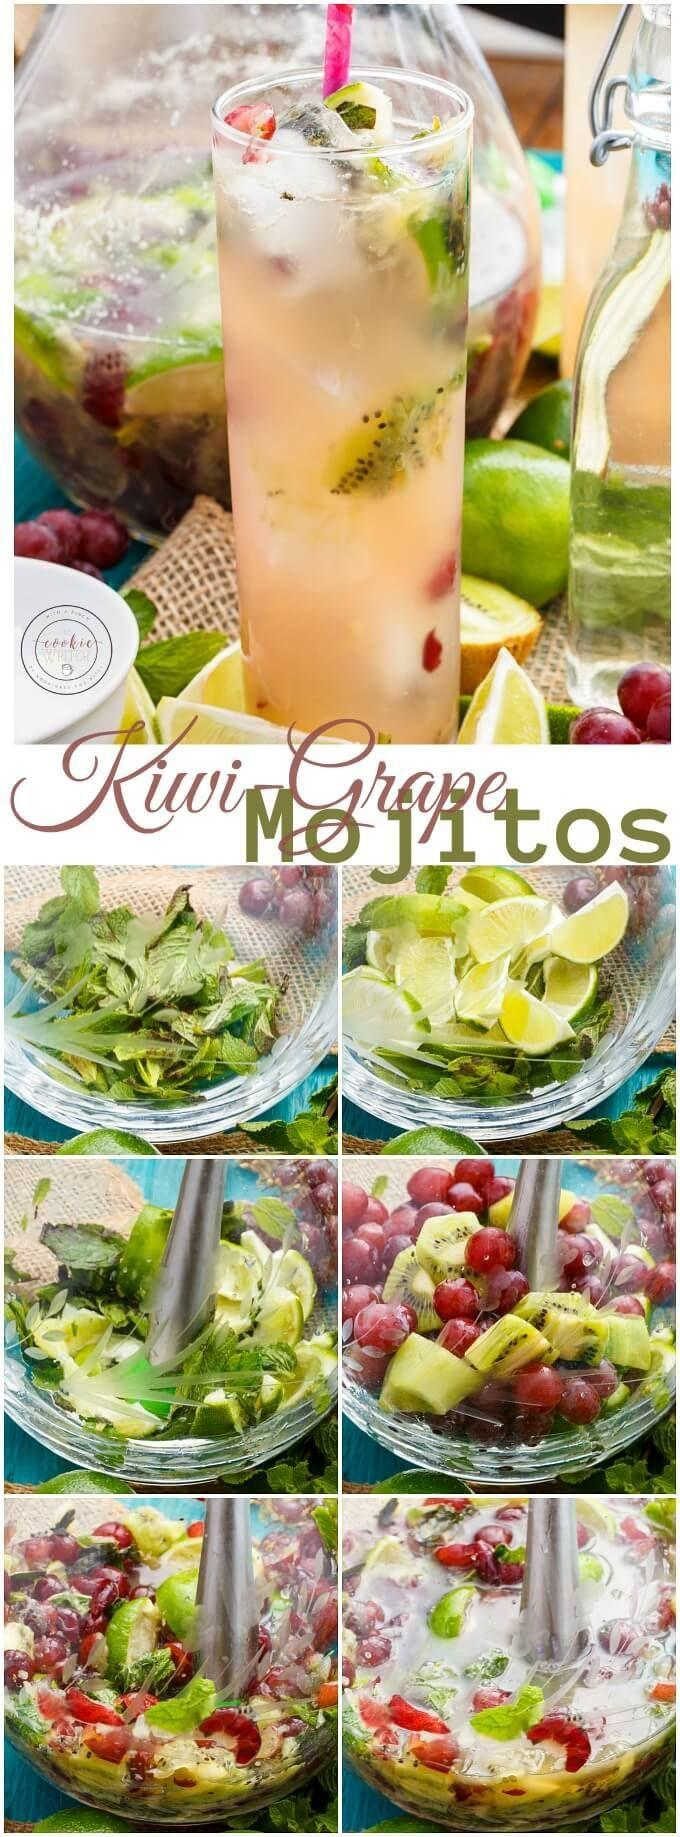 Wedding - Fresh Kiwi-Grape Mojitos